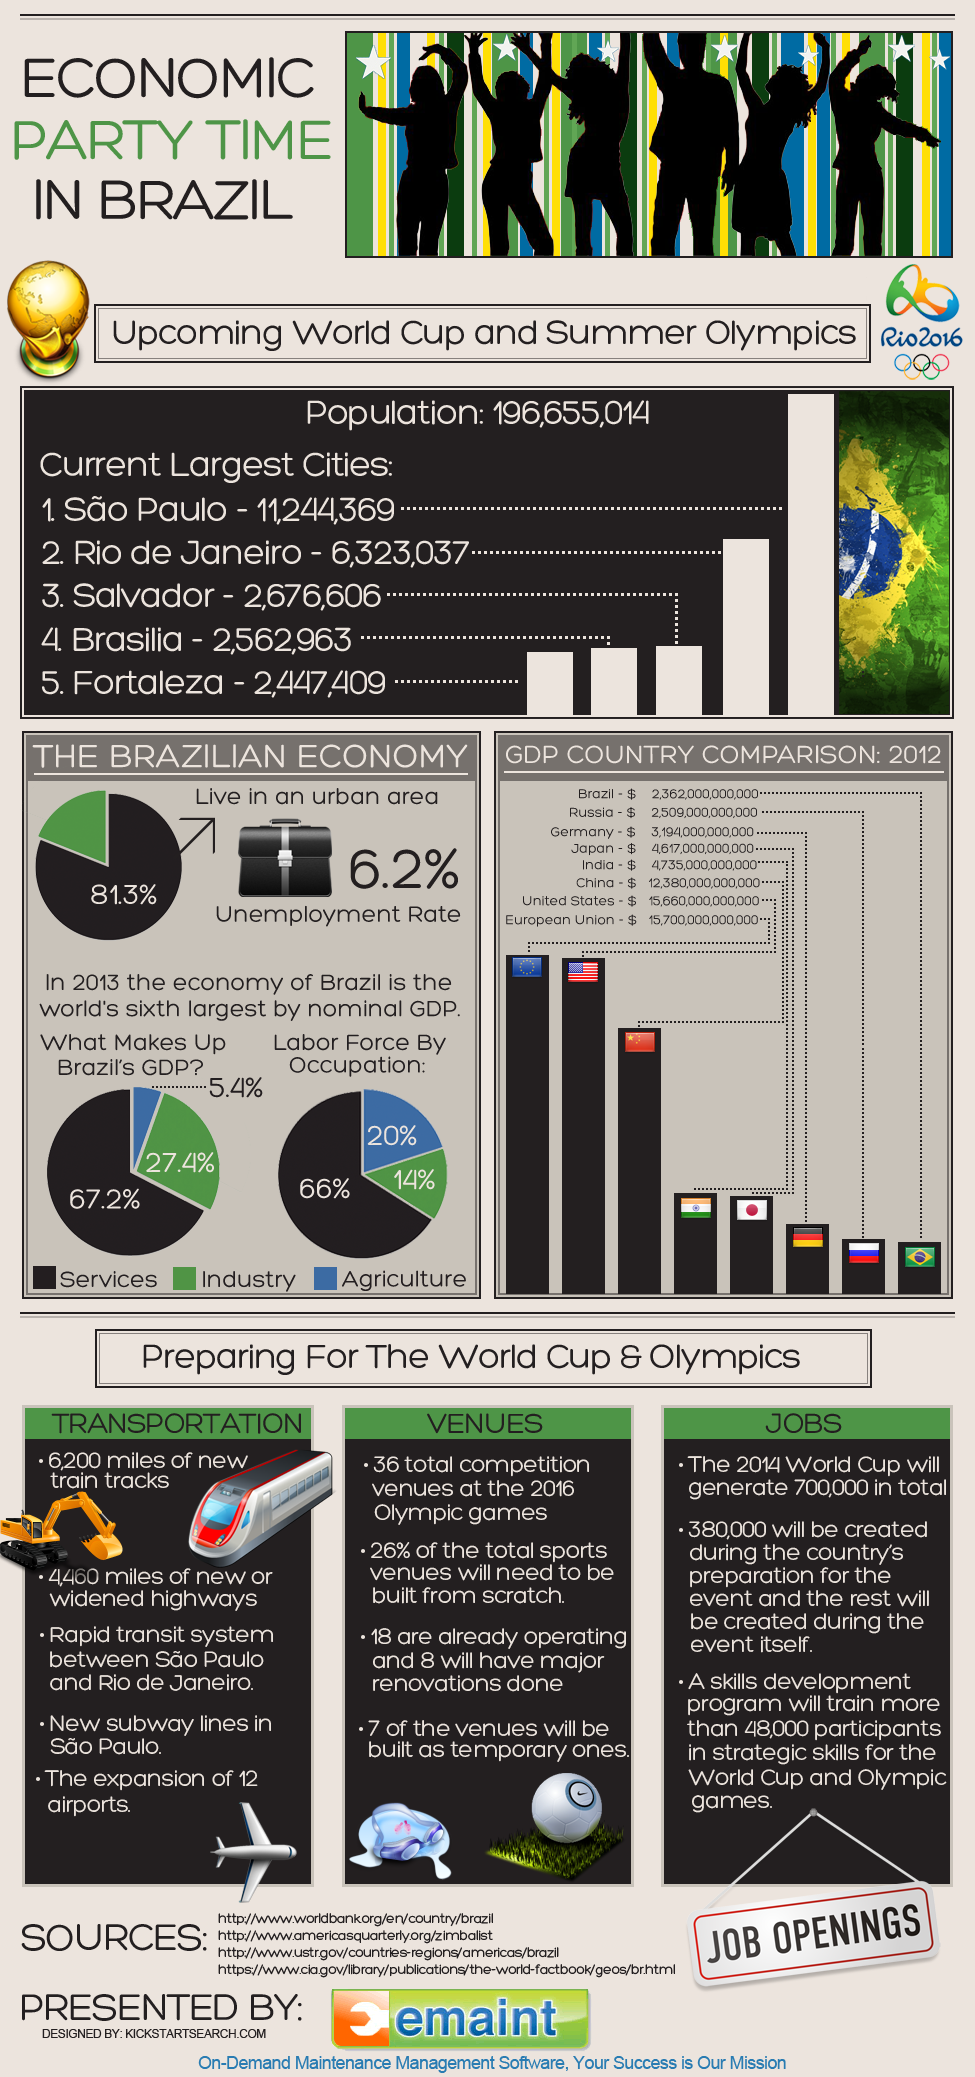 Economic Party Time in Brazil [Infographic]